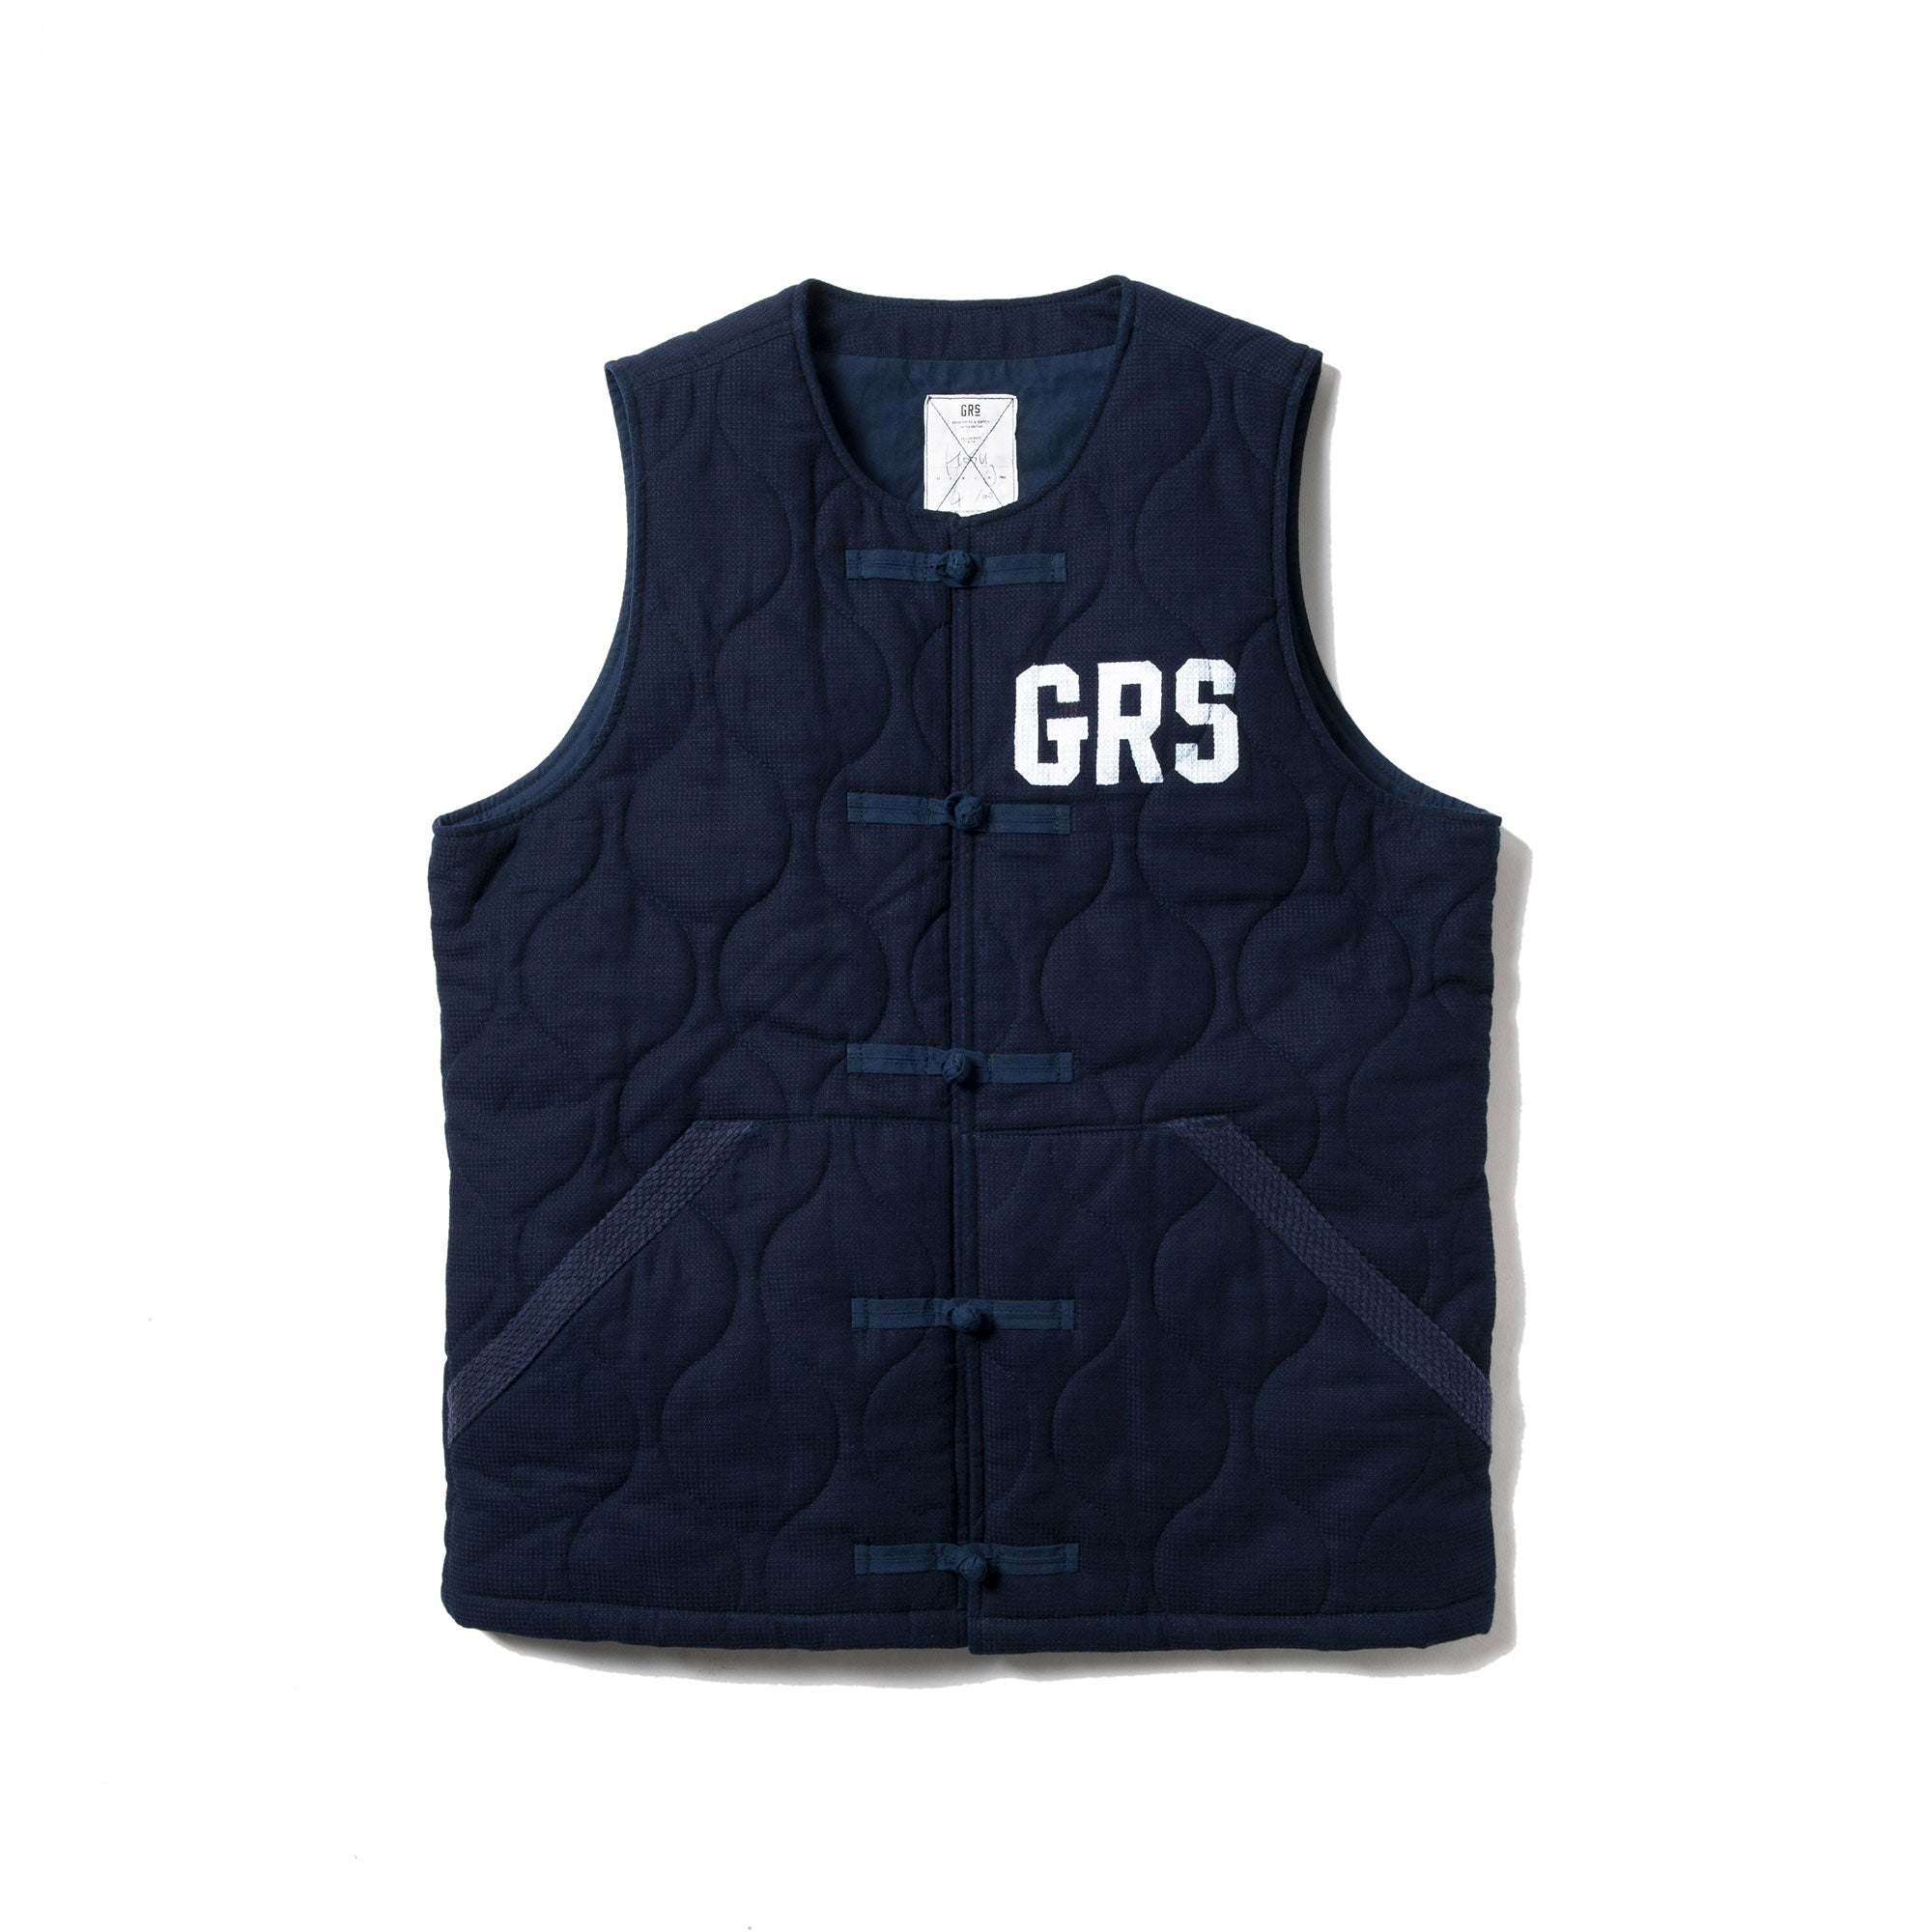 BOUNDLESS SERIES - HAND PAINTEDS SASHIKO QUILTED VEST by HK SIGN PAINTER MAN LUK